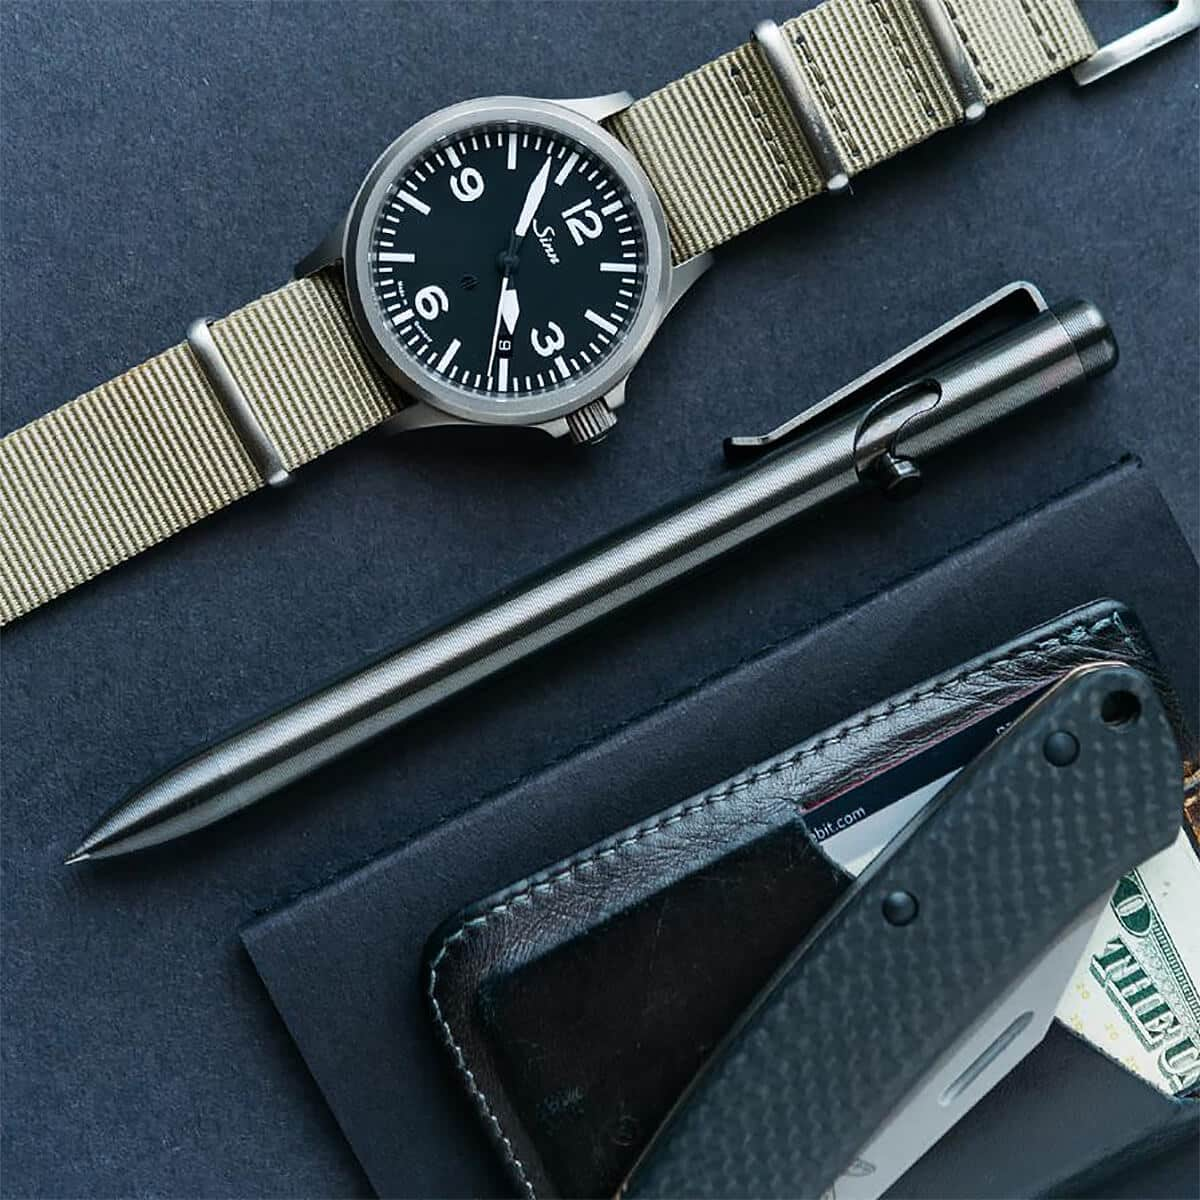 EDC Pen Buying Guide - 28 of the Best